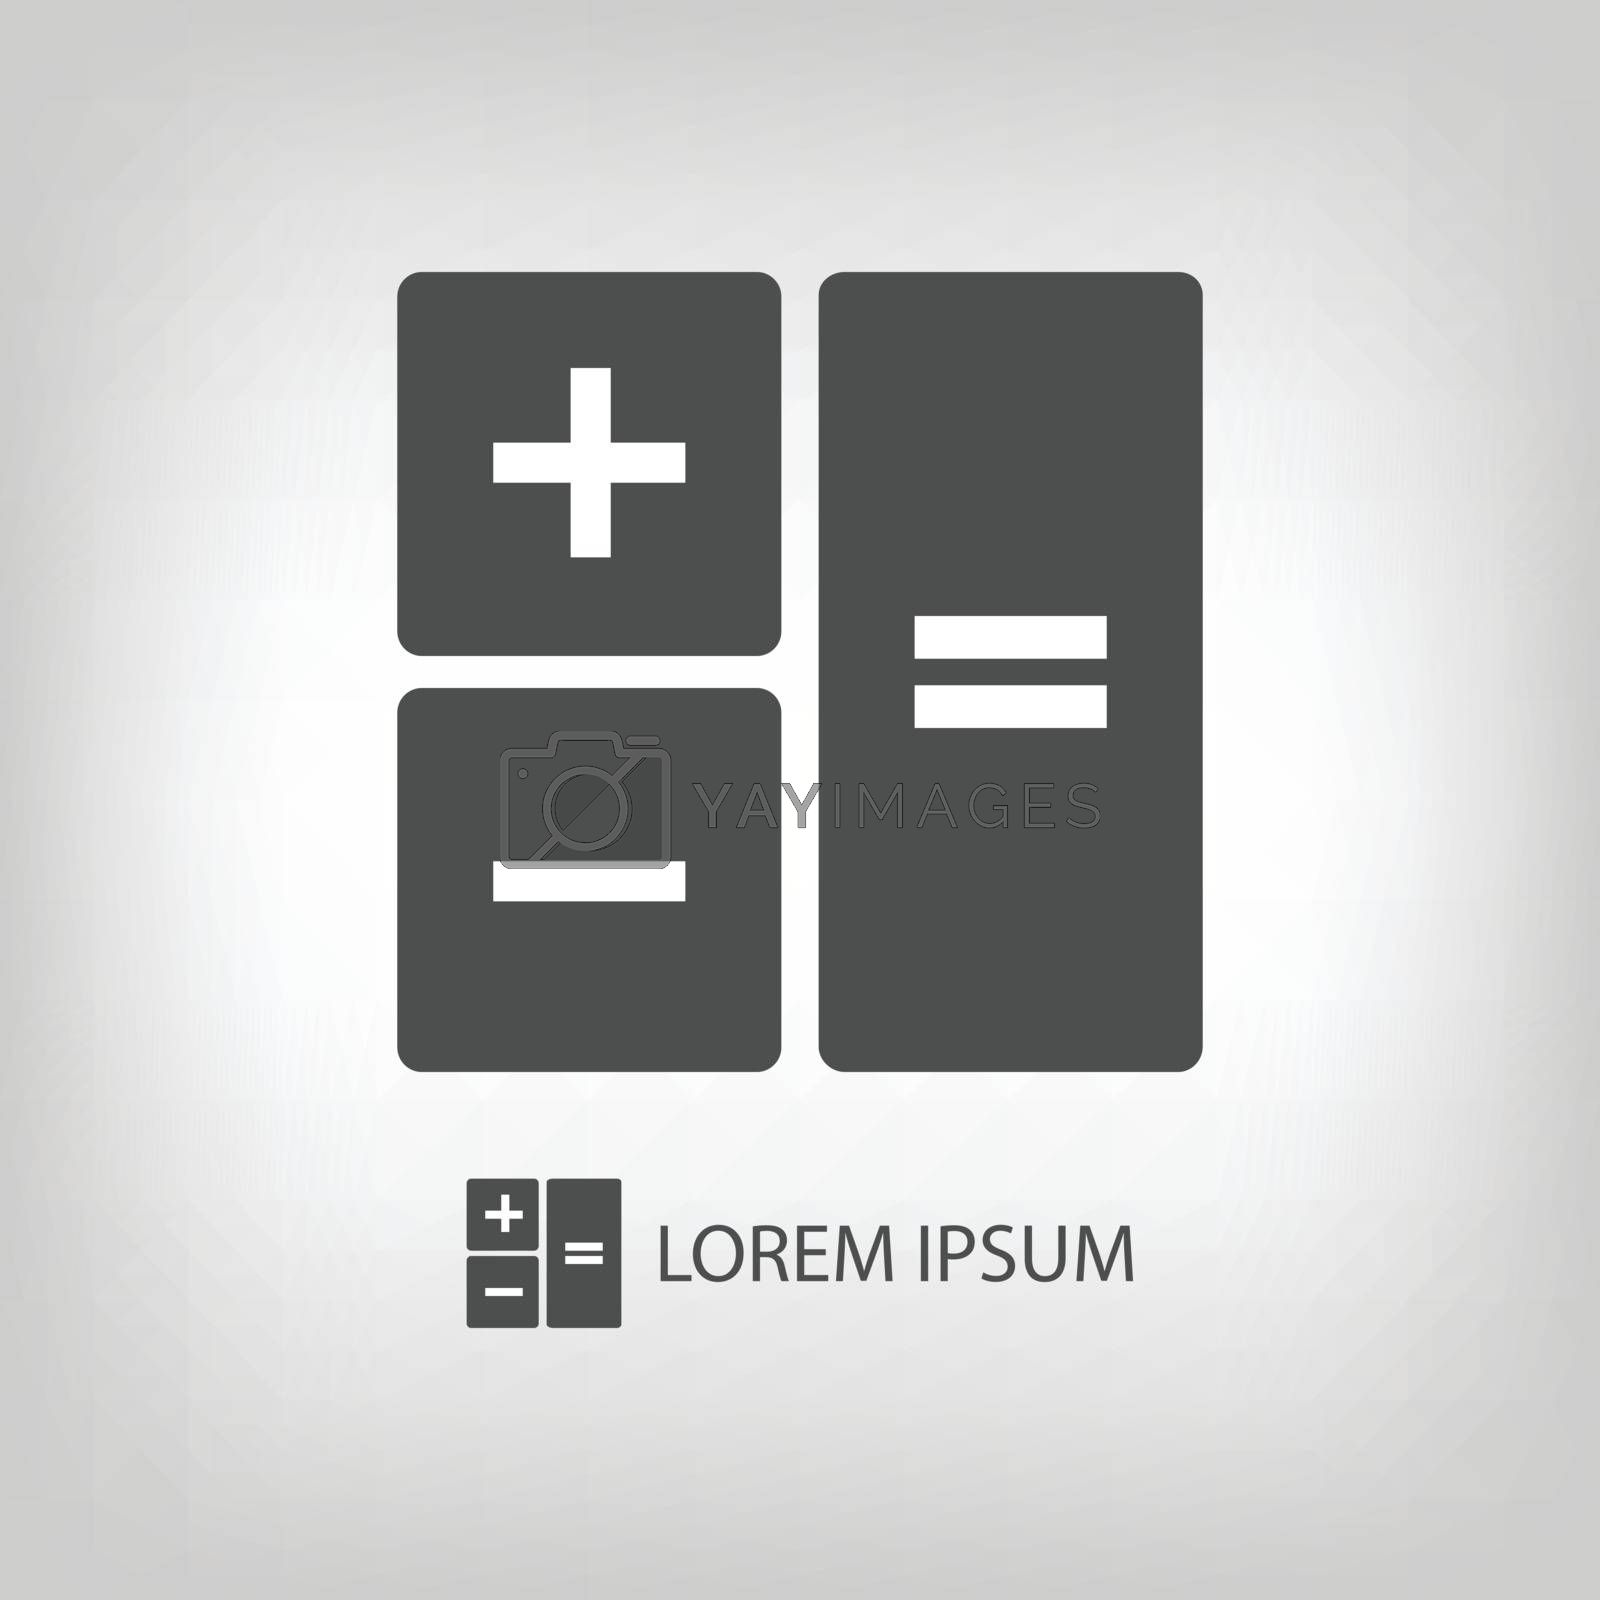 Calculator as logo with copyspace in grey colors